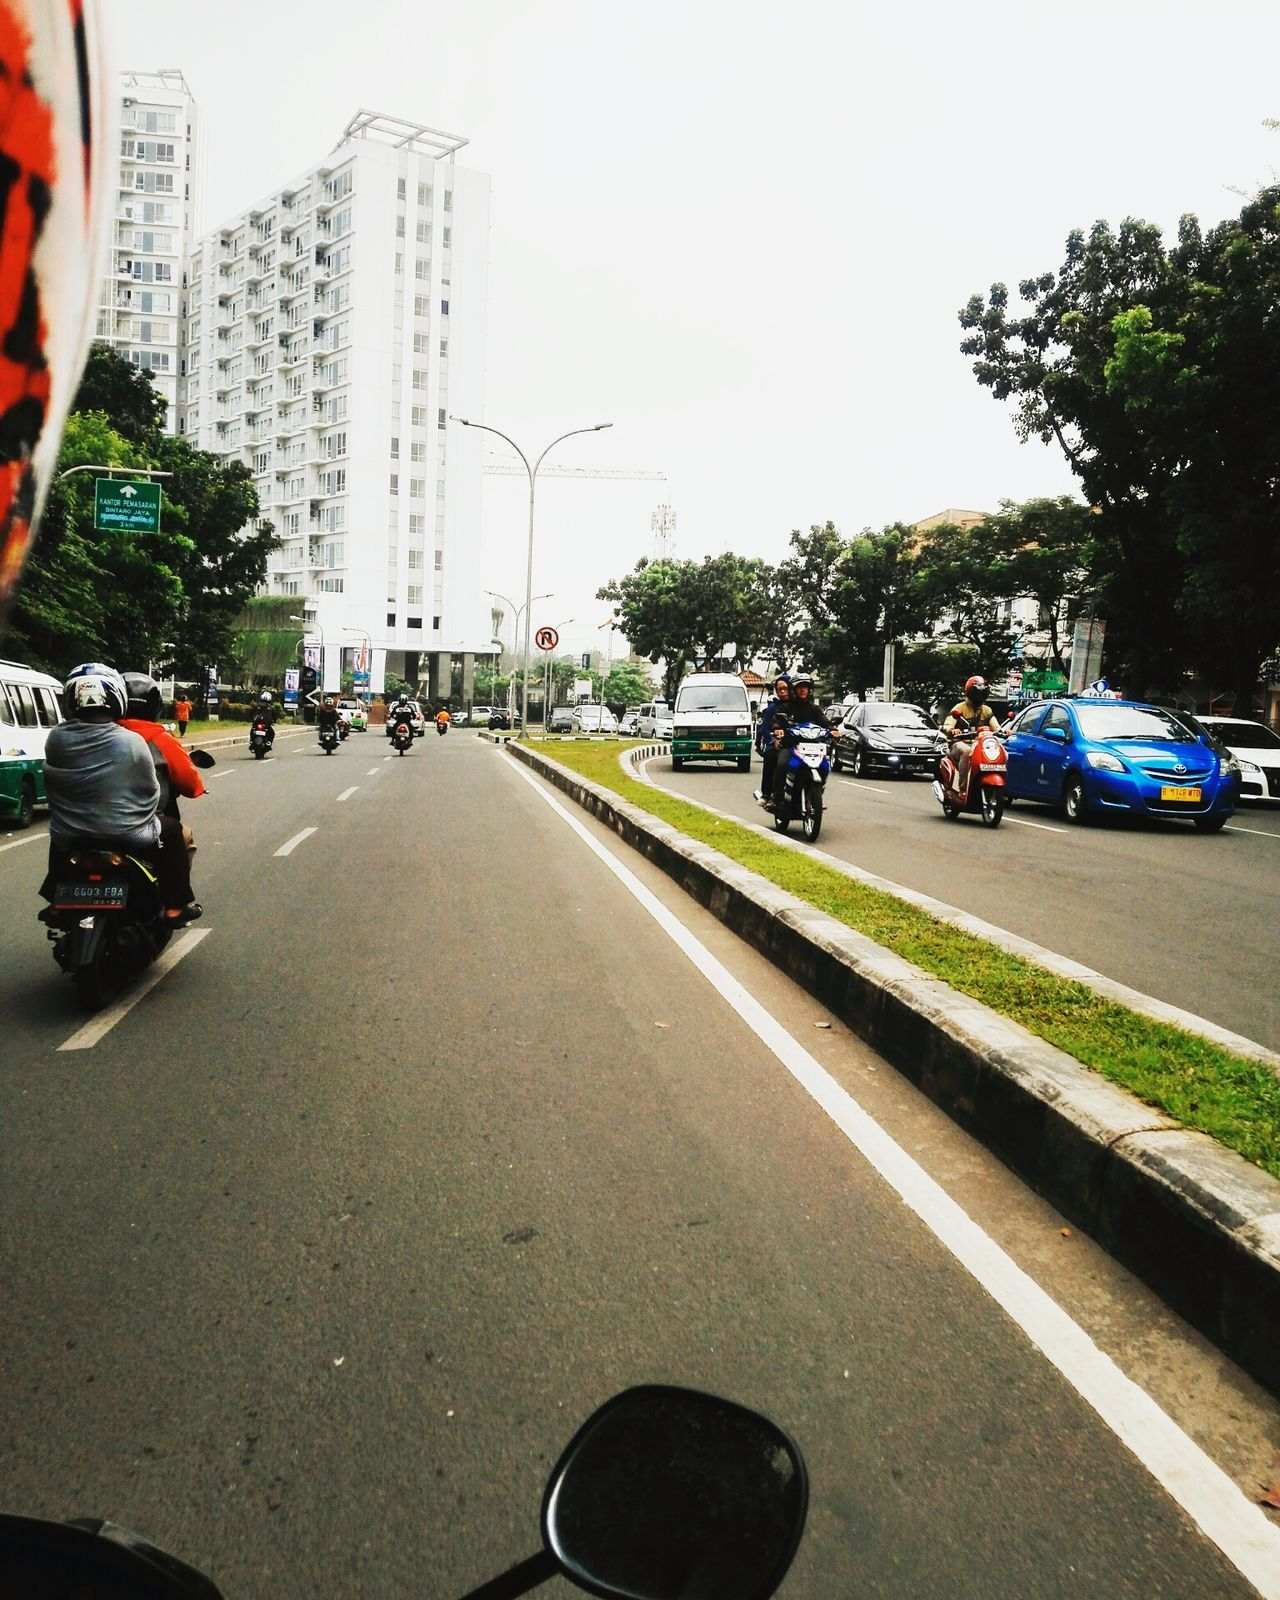 On The Bike On The Street Angkot Jakanan People On The Bike Bintaro INDONESIA